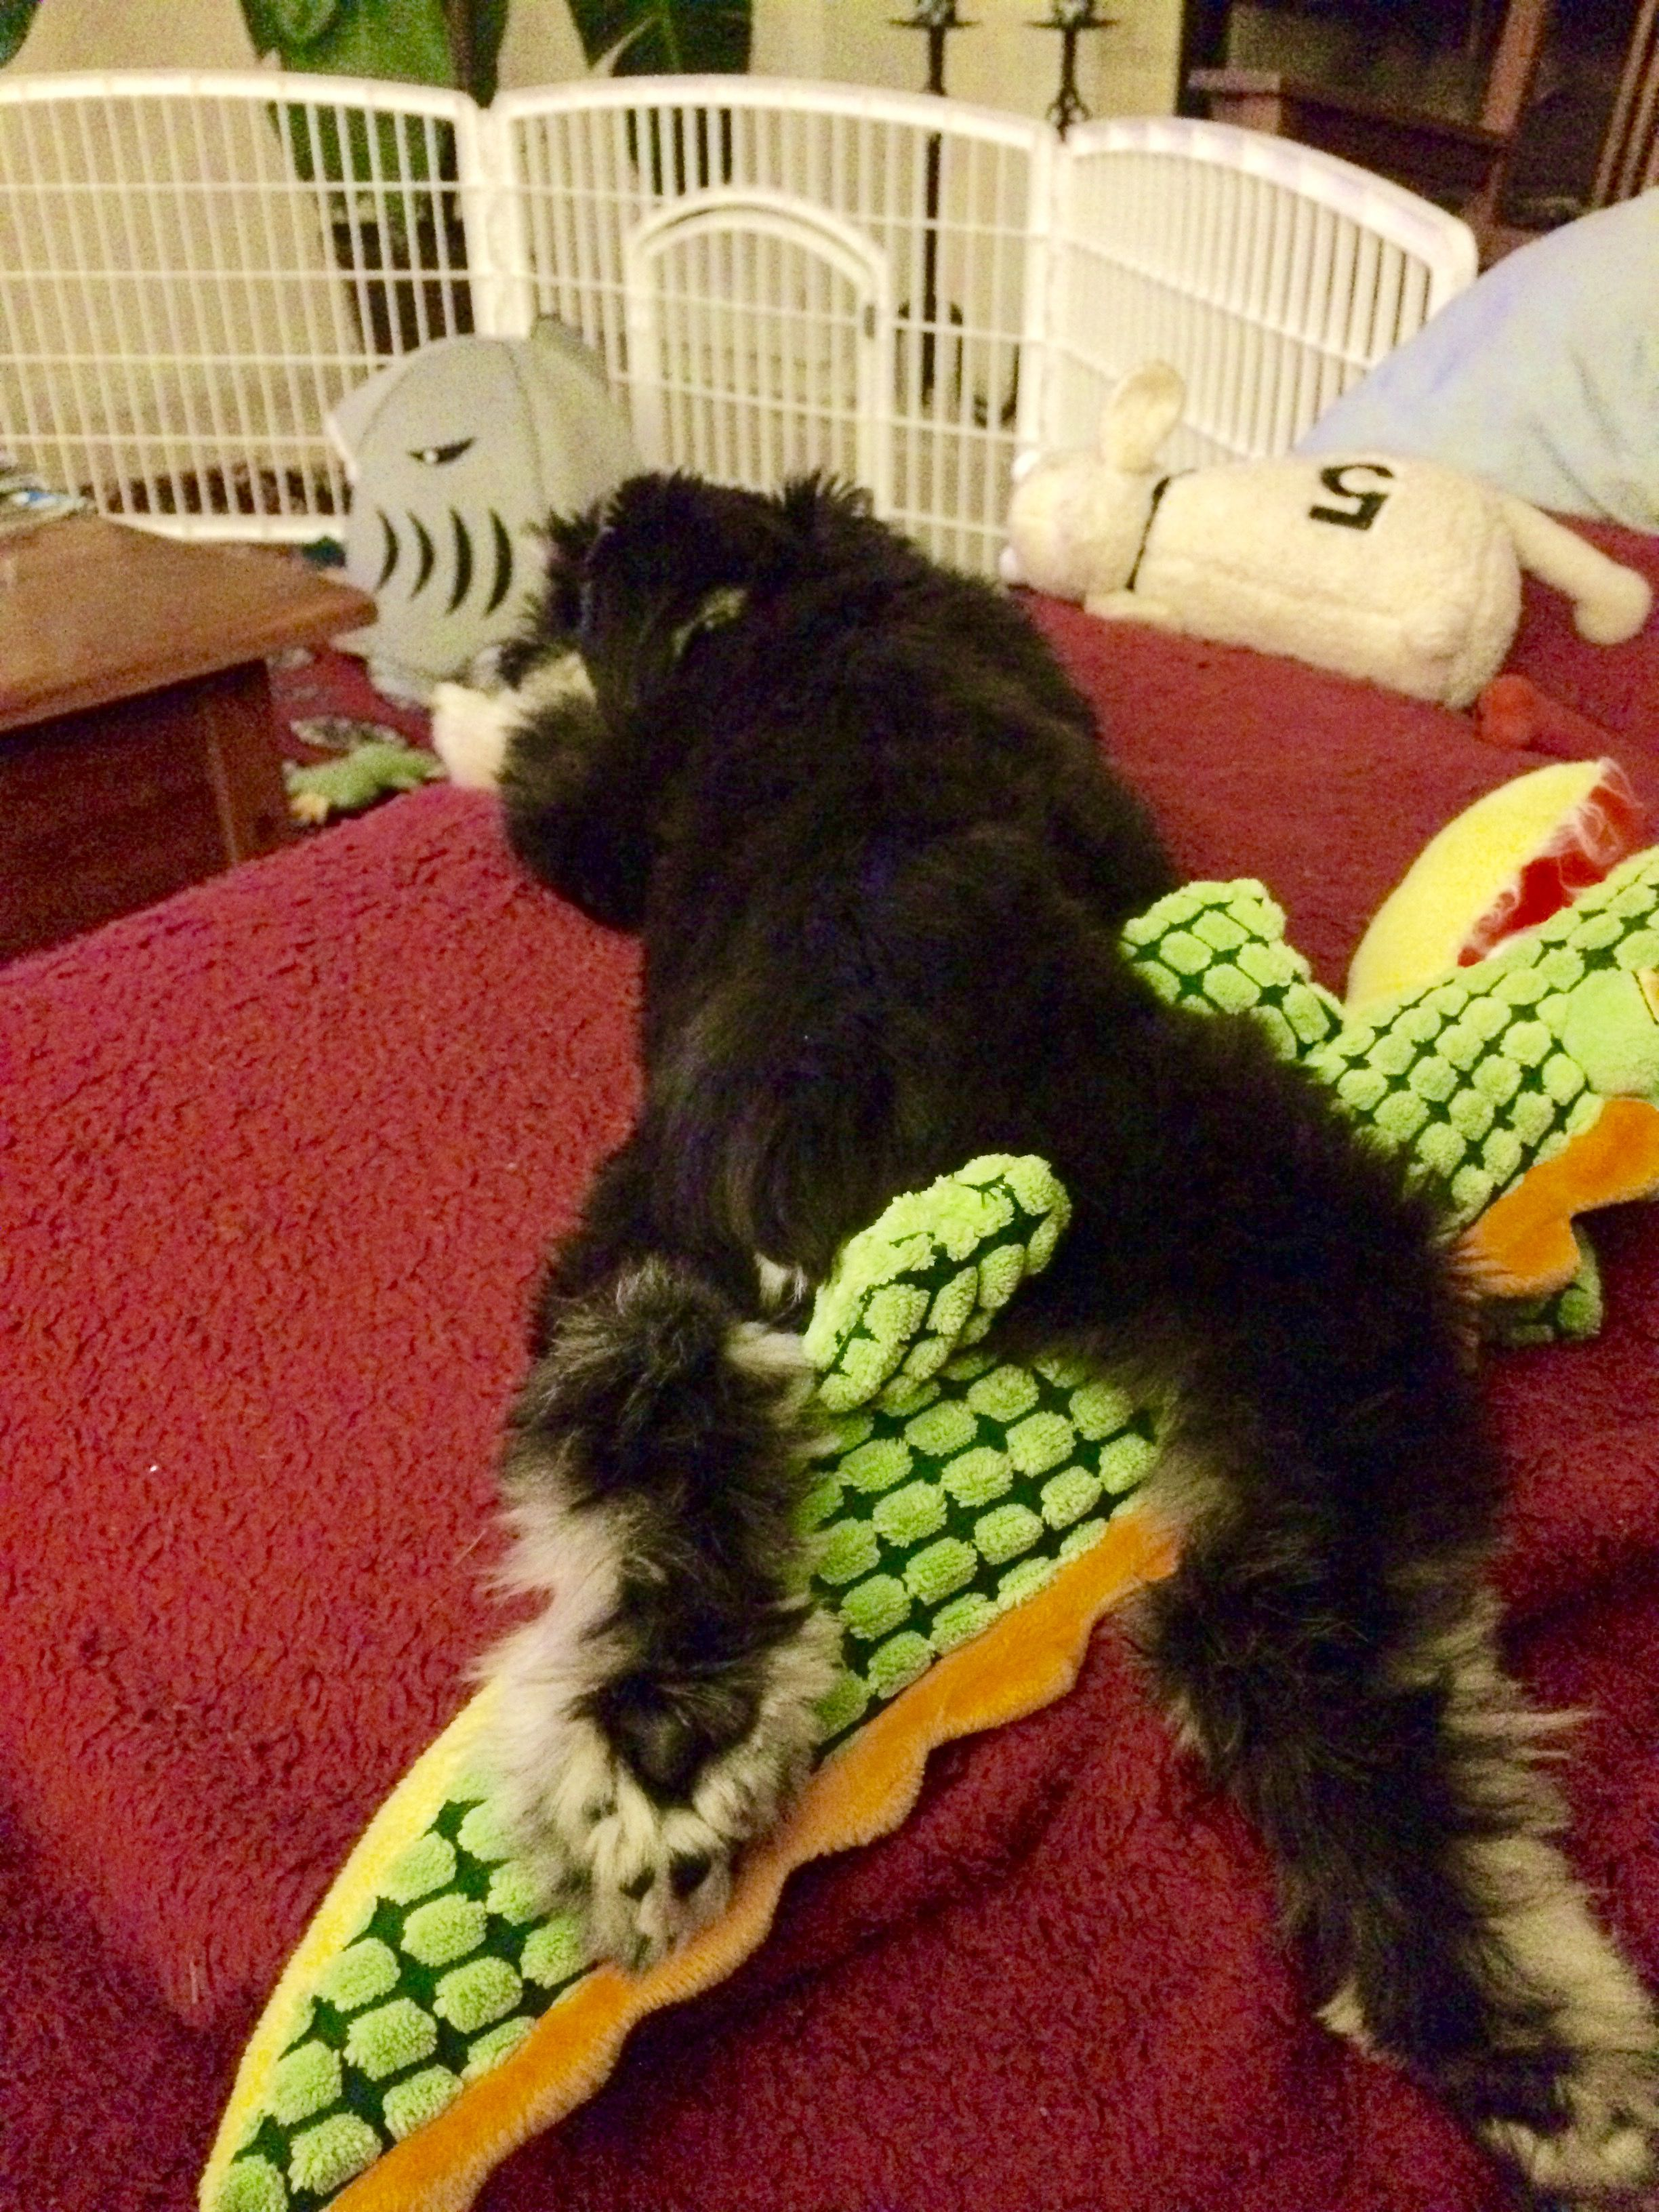 Having conquered lambie and gator, Remy eyes Sharkey, the final prey of the evening.